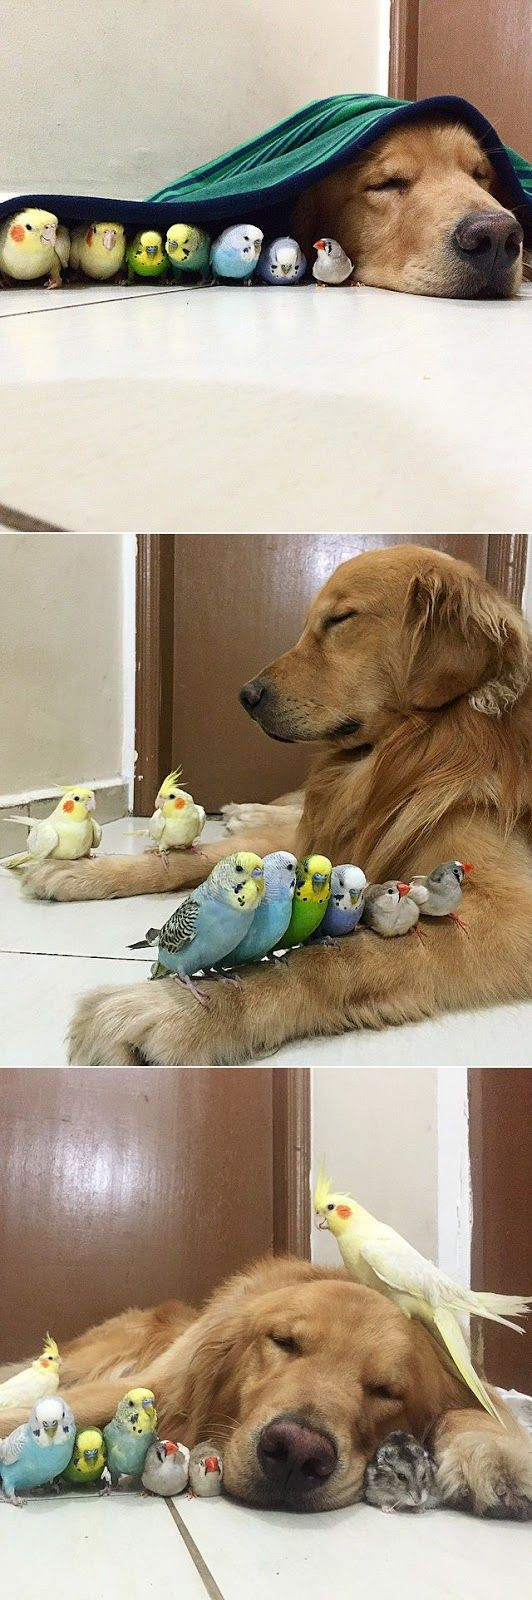 Golden Retriever named Bob, his feathered friends and his buddy hamster ♥